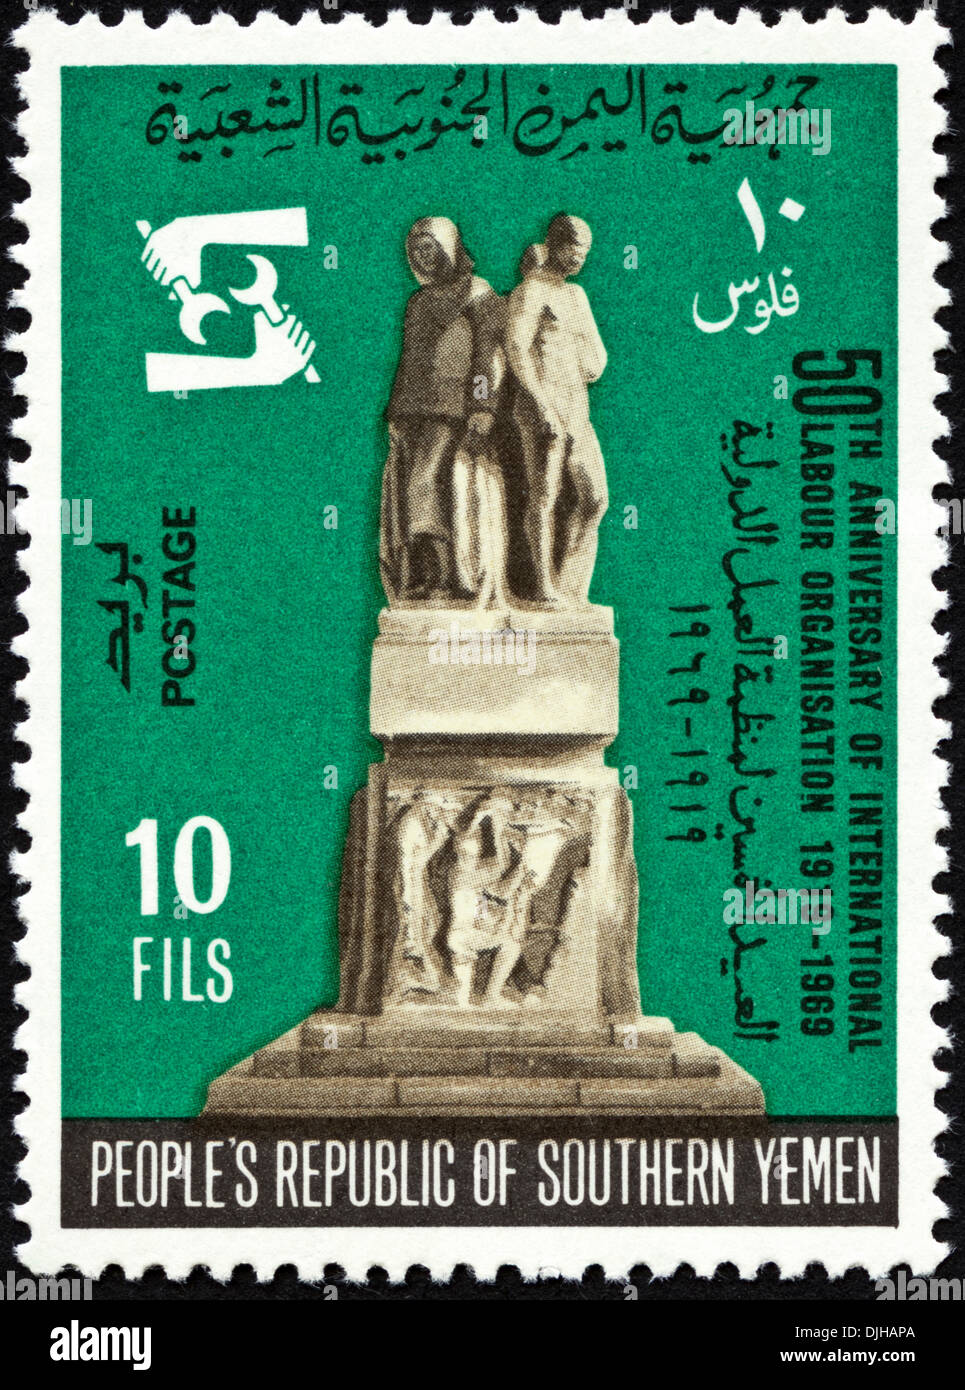 postage stamp People's Republic of Southern Yemen 10 Fils featuring 50th Anniversary of International Labour Organisation 1919 - 1969 dated 1969 - Stock Image